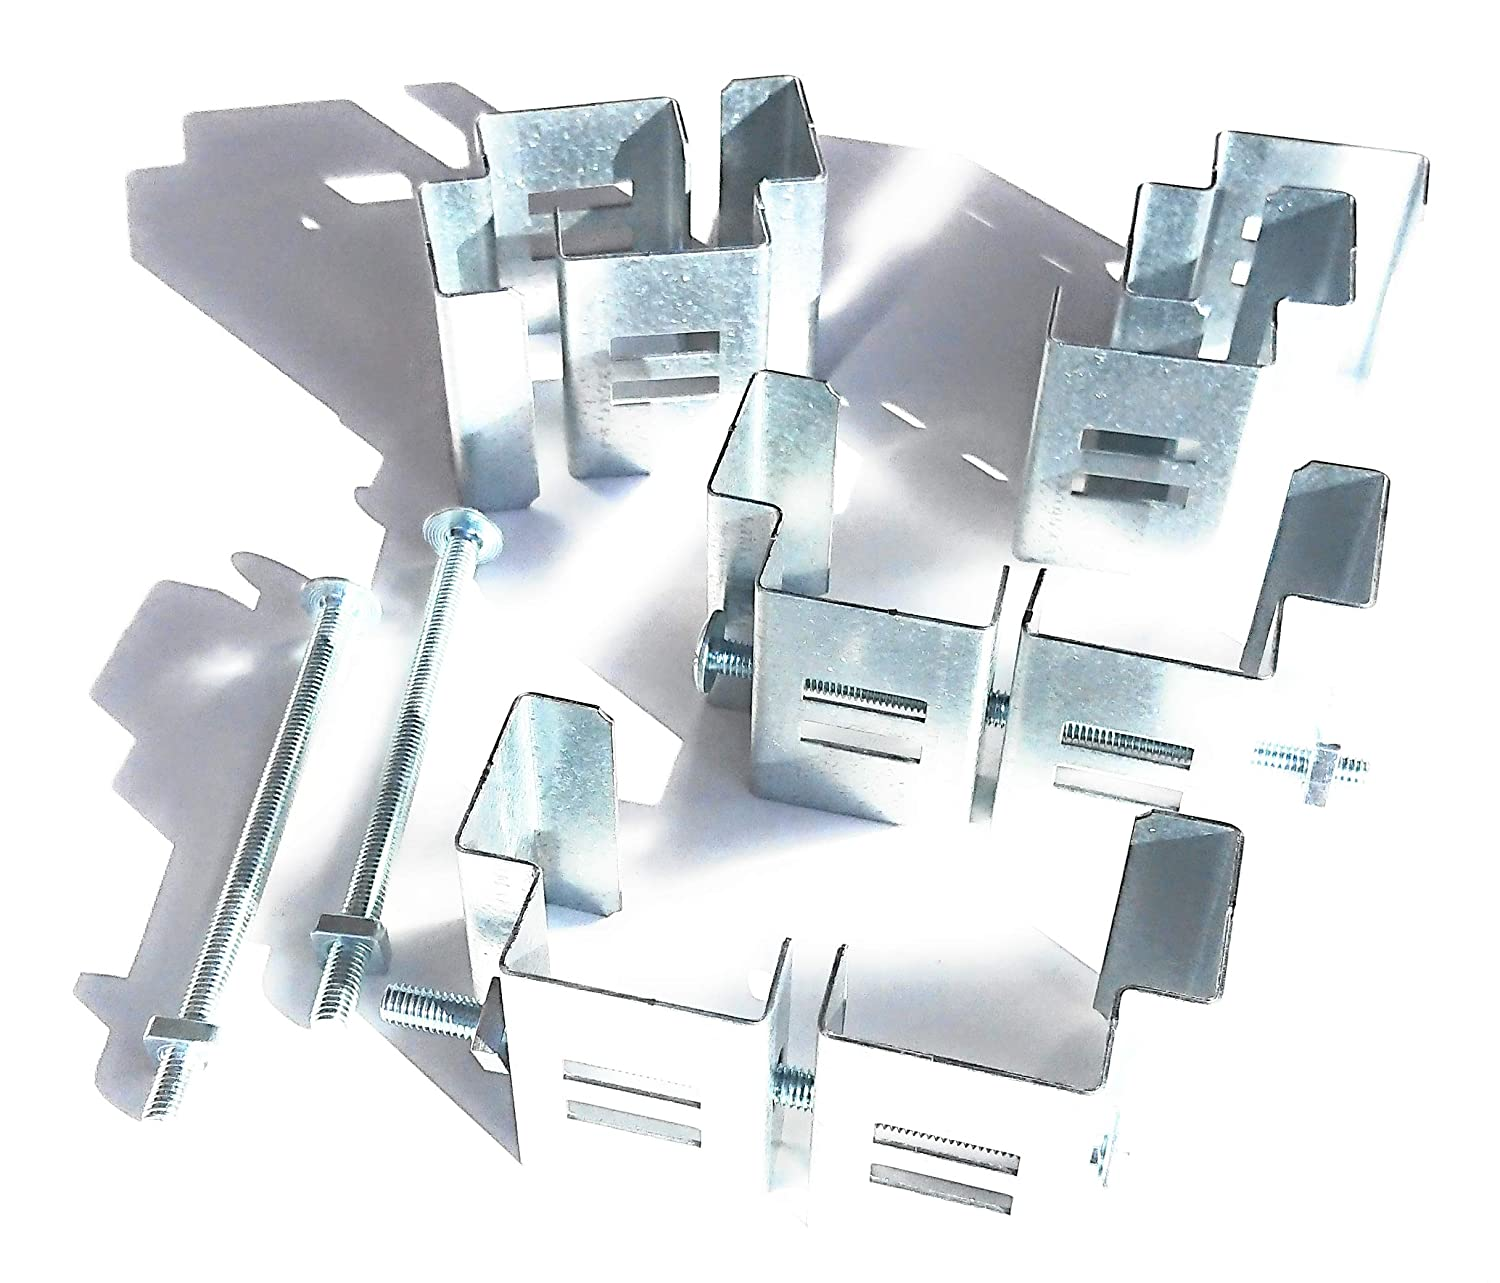 Postfix Slotted Concrete Fence Post Brackets to Fit 4\